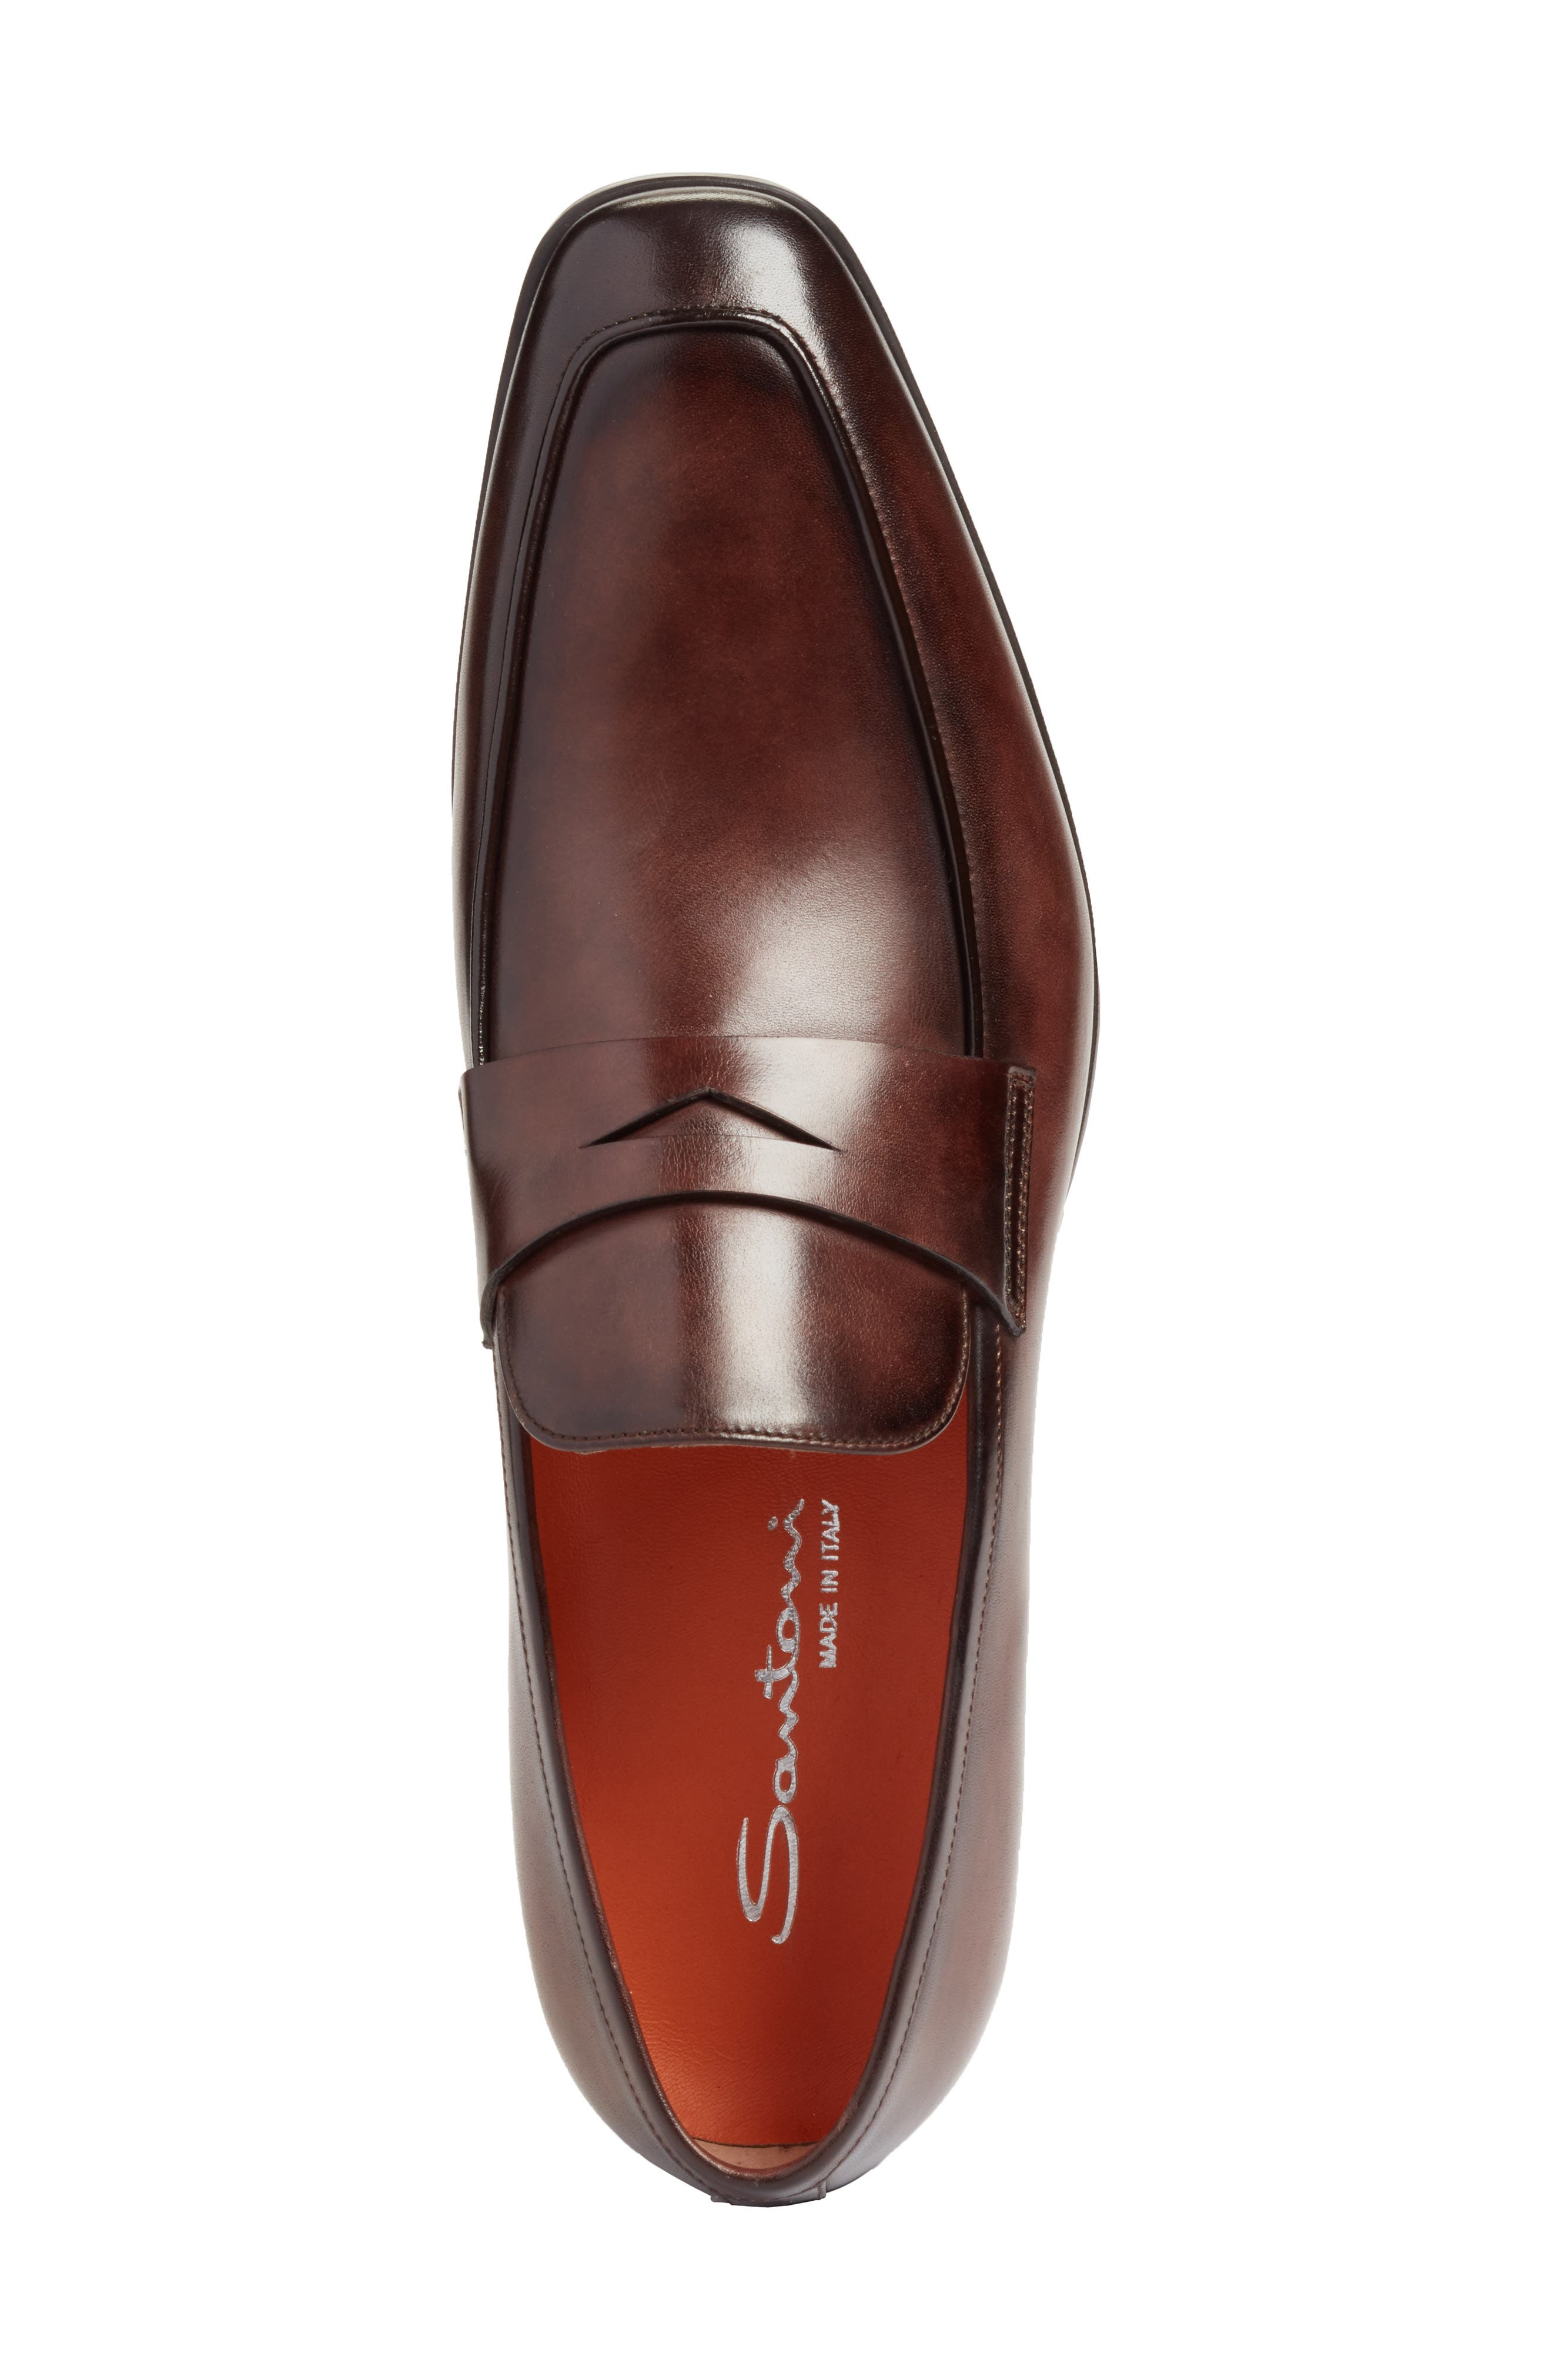 Fisk Square Toe Penny Loafer,                             Alternate thumbnail 5, color,                             BROWN LEATHER